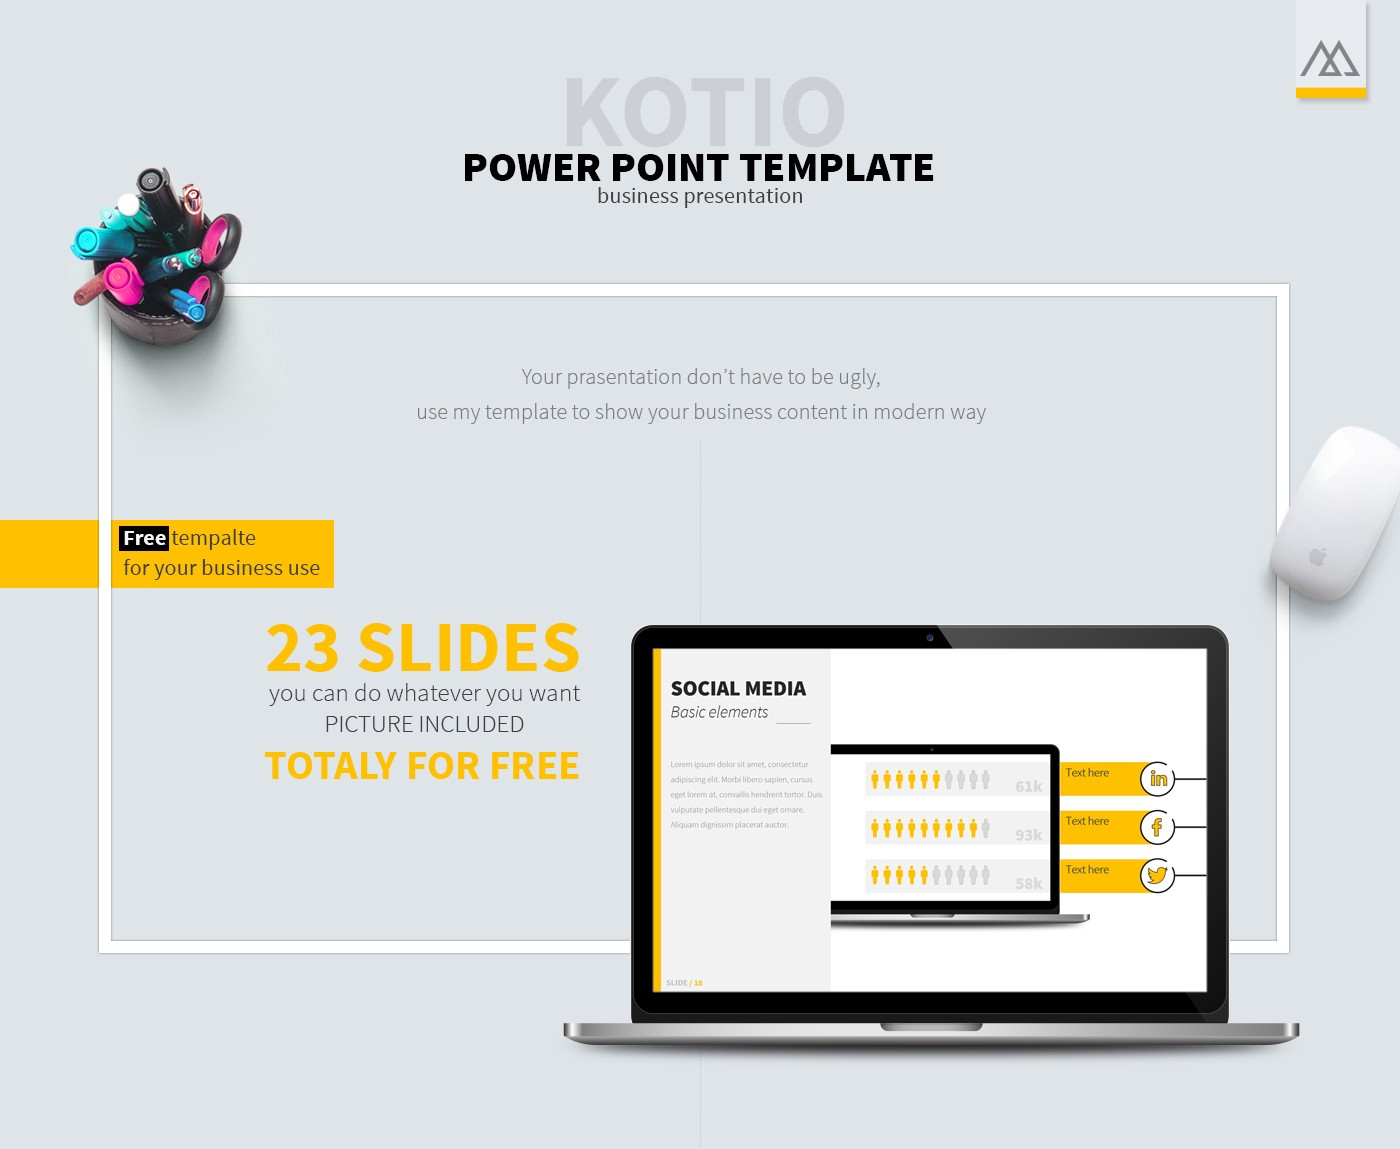 40 free cool powerpoint templates for presentations download wajeb Gallery